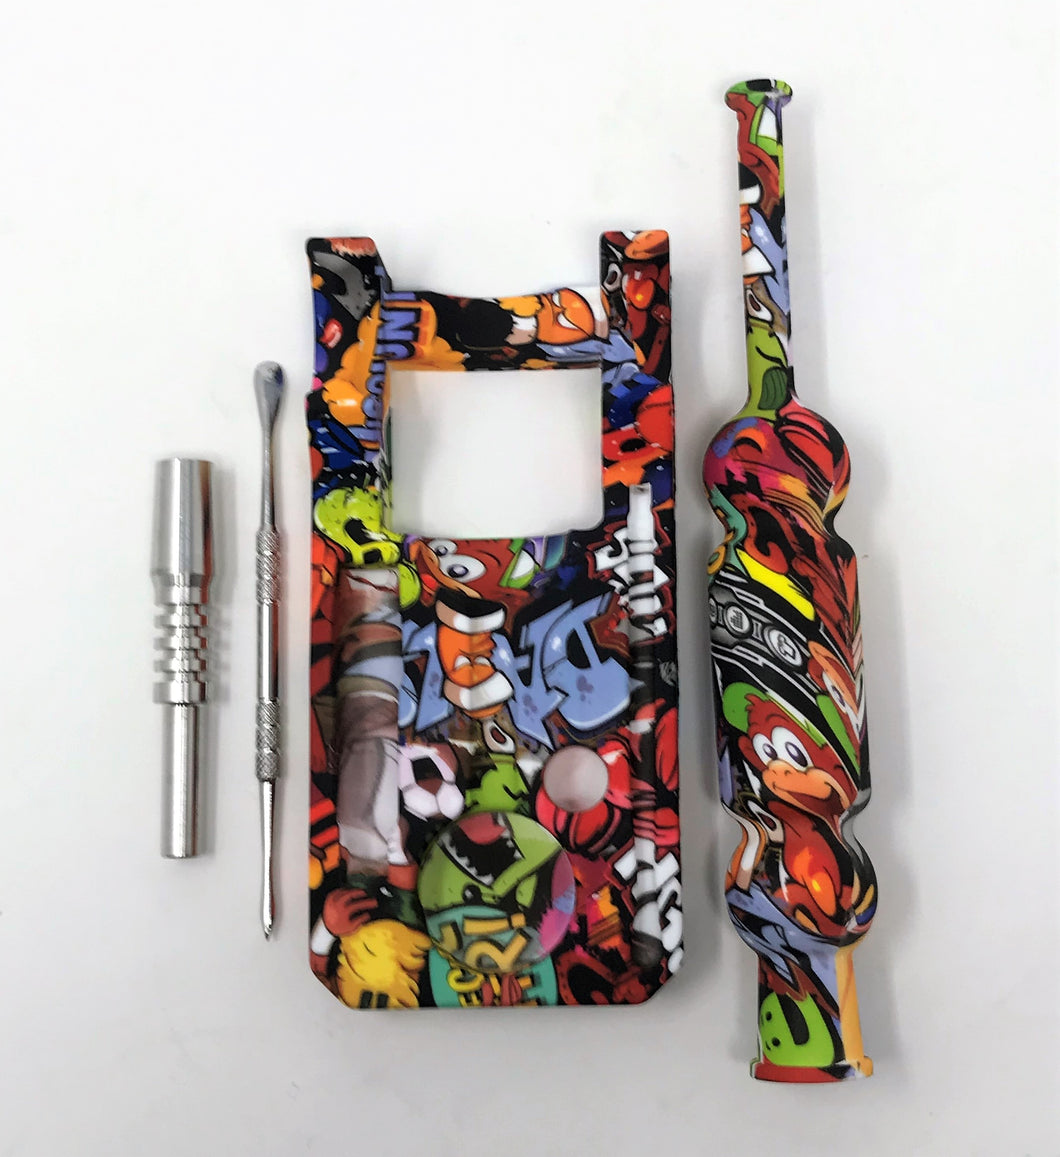 Silicone Nectar Kit w/Honey Straw Dab Tool Titanium nail Cartoon Design